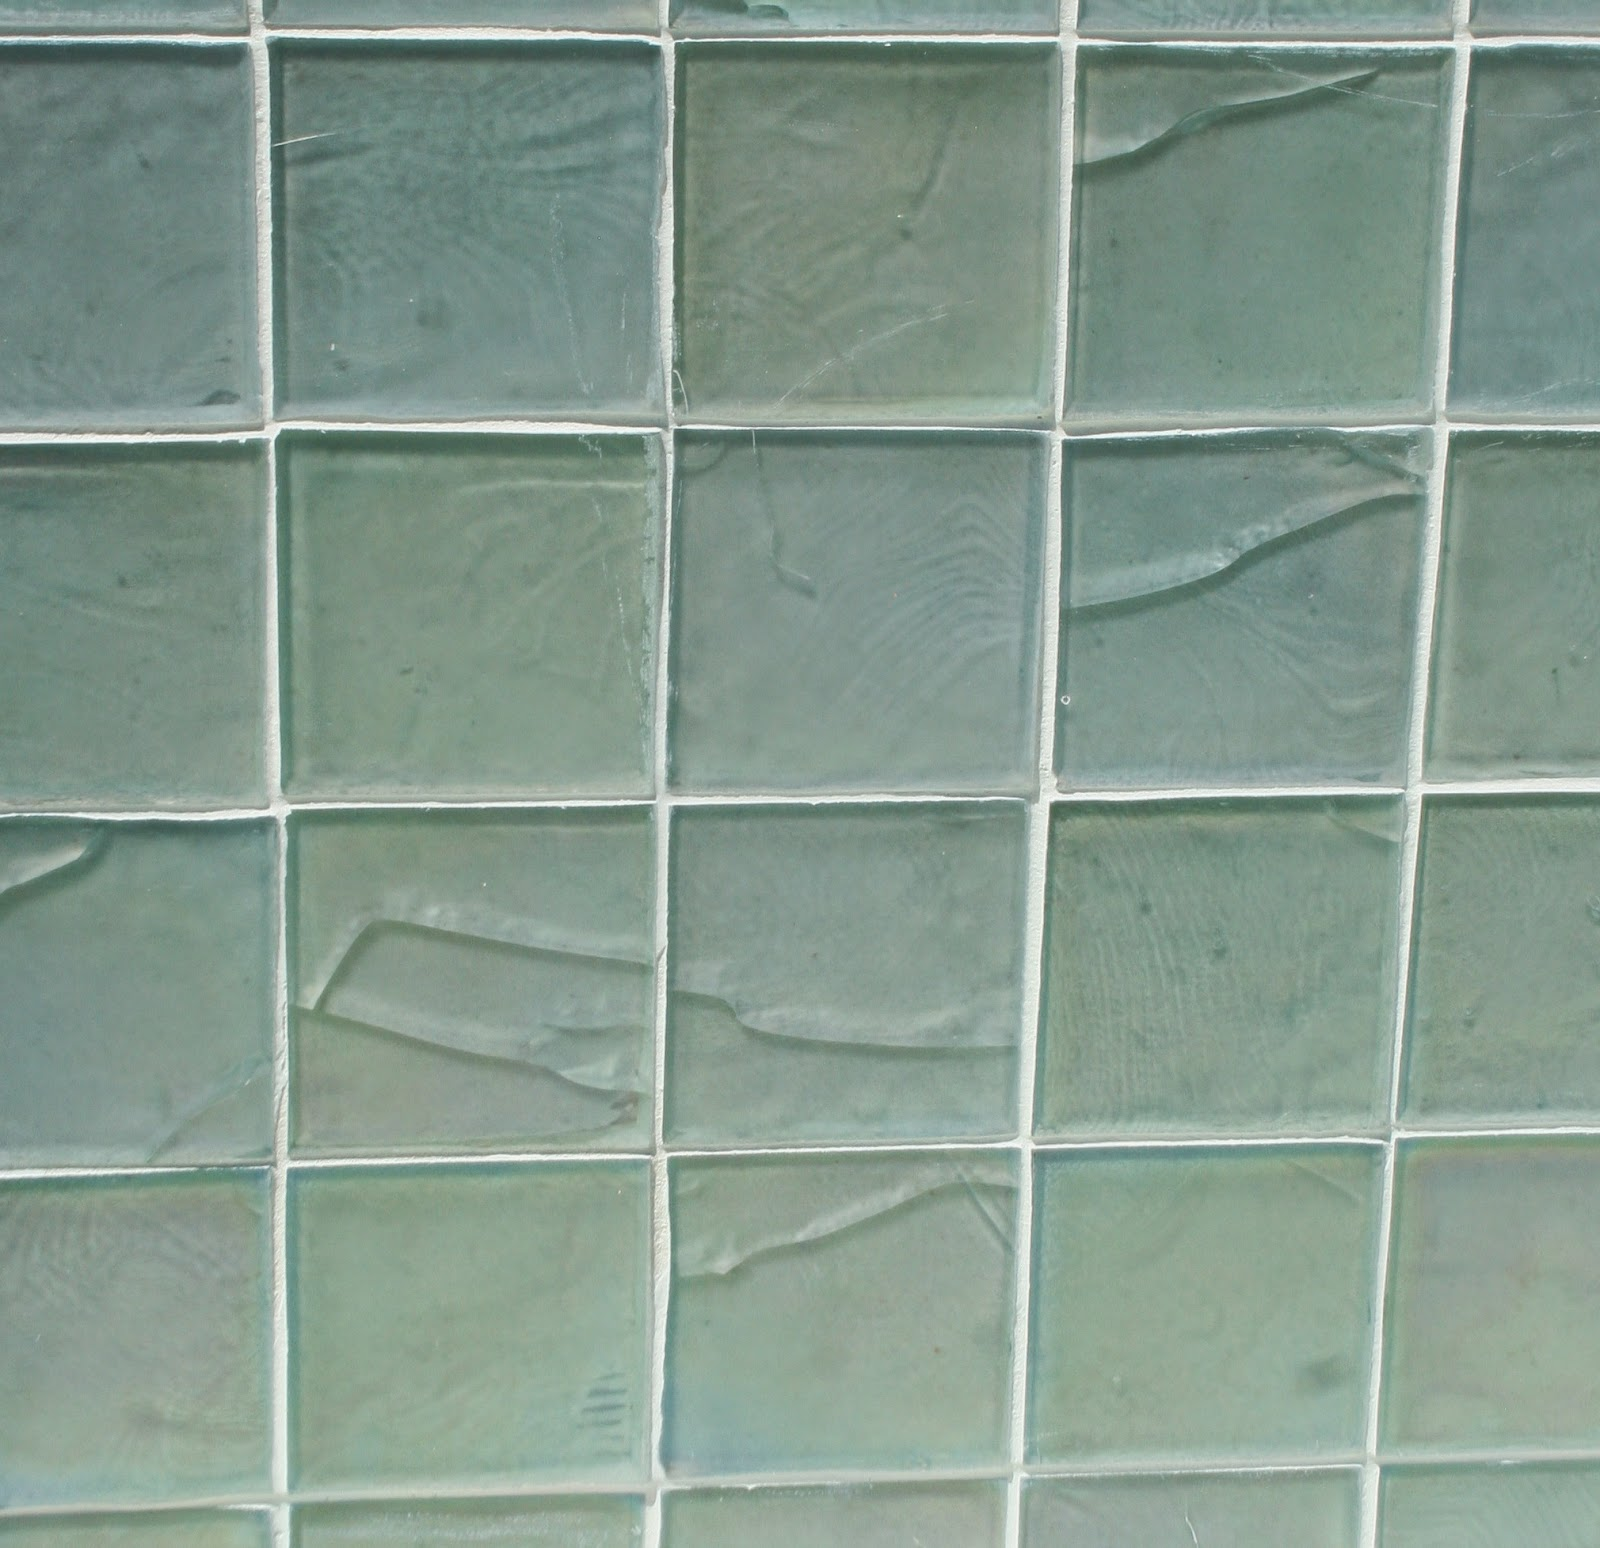 Watershapes, Water Shapes: Swimming Pool Glass Tile Expert Cracking ...